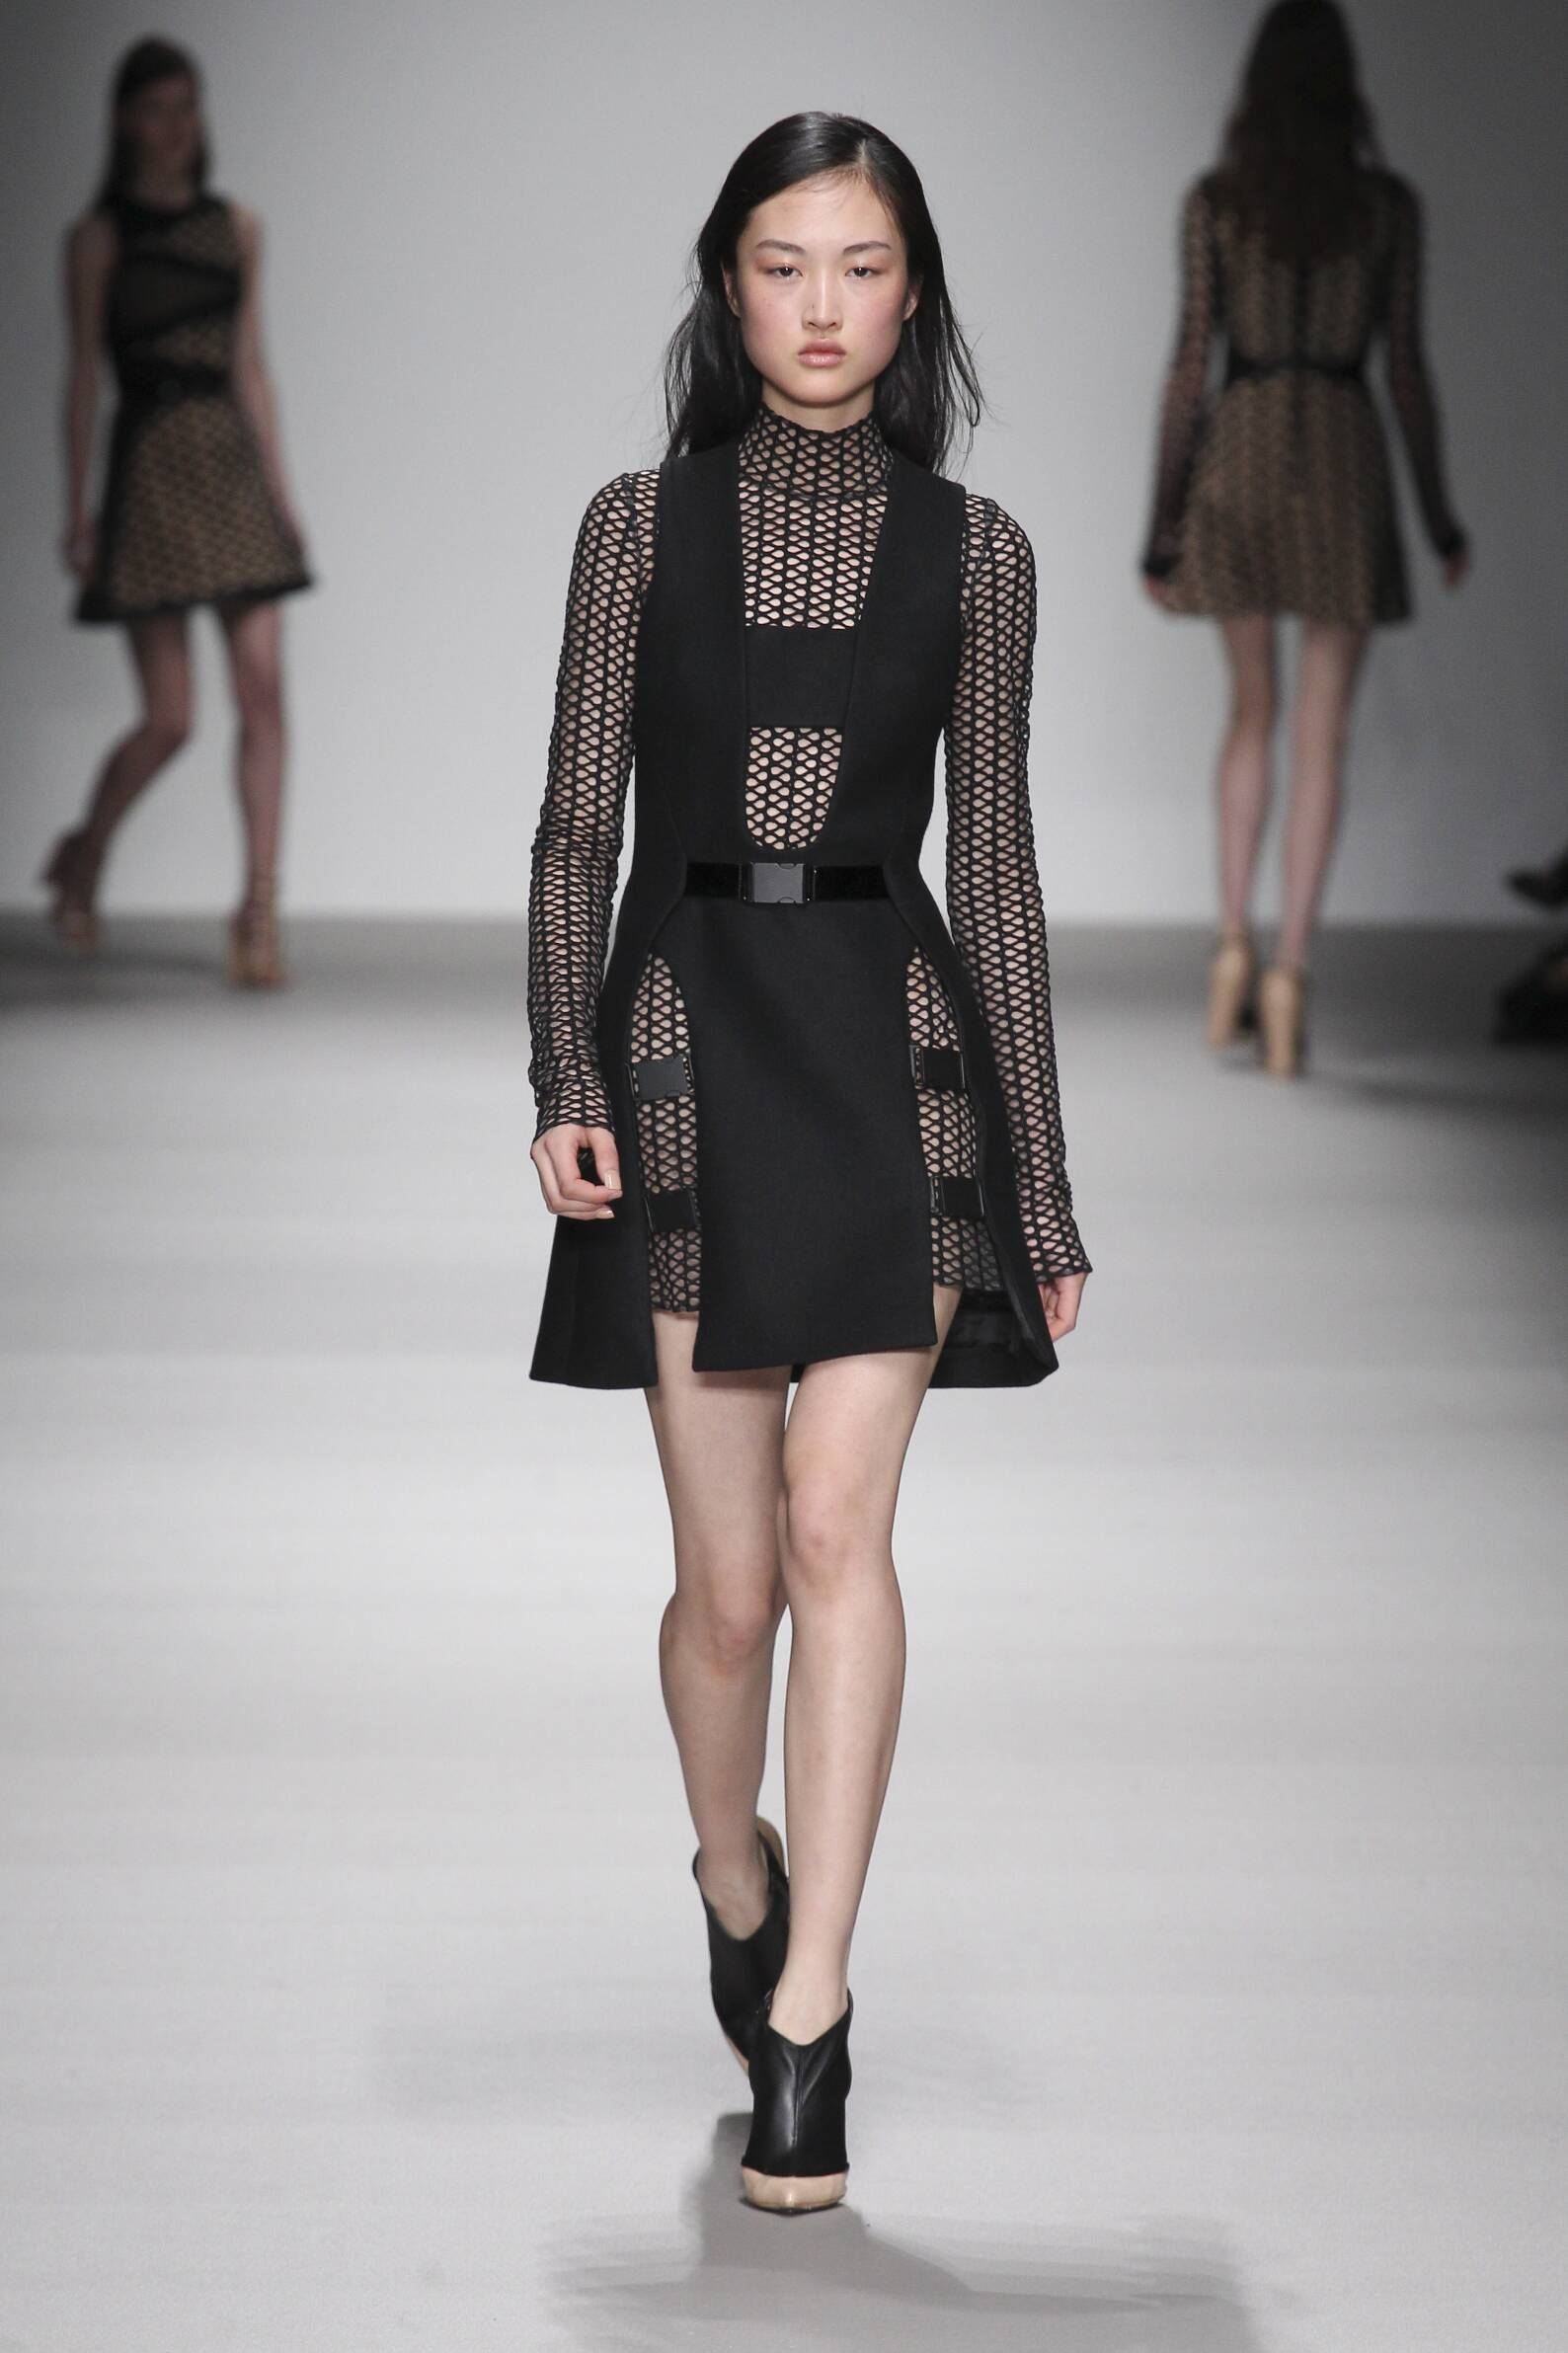 David Koma Collection Fall 2015 Catwalk